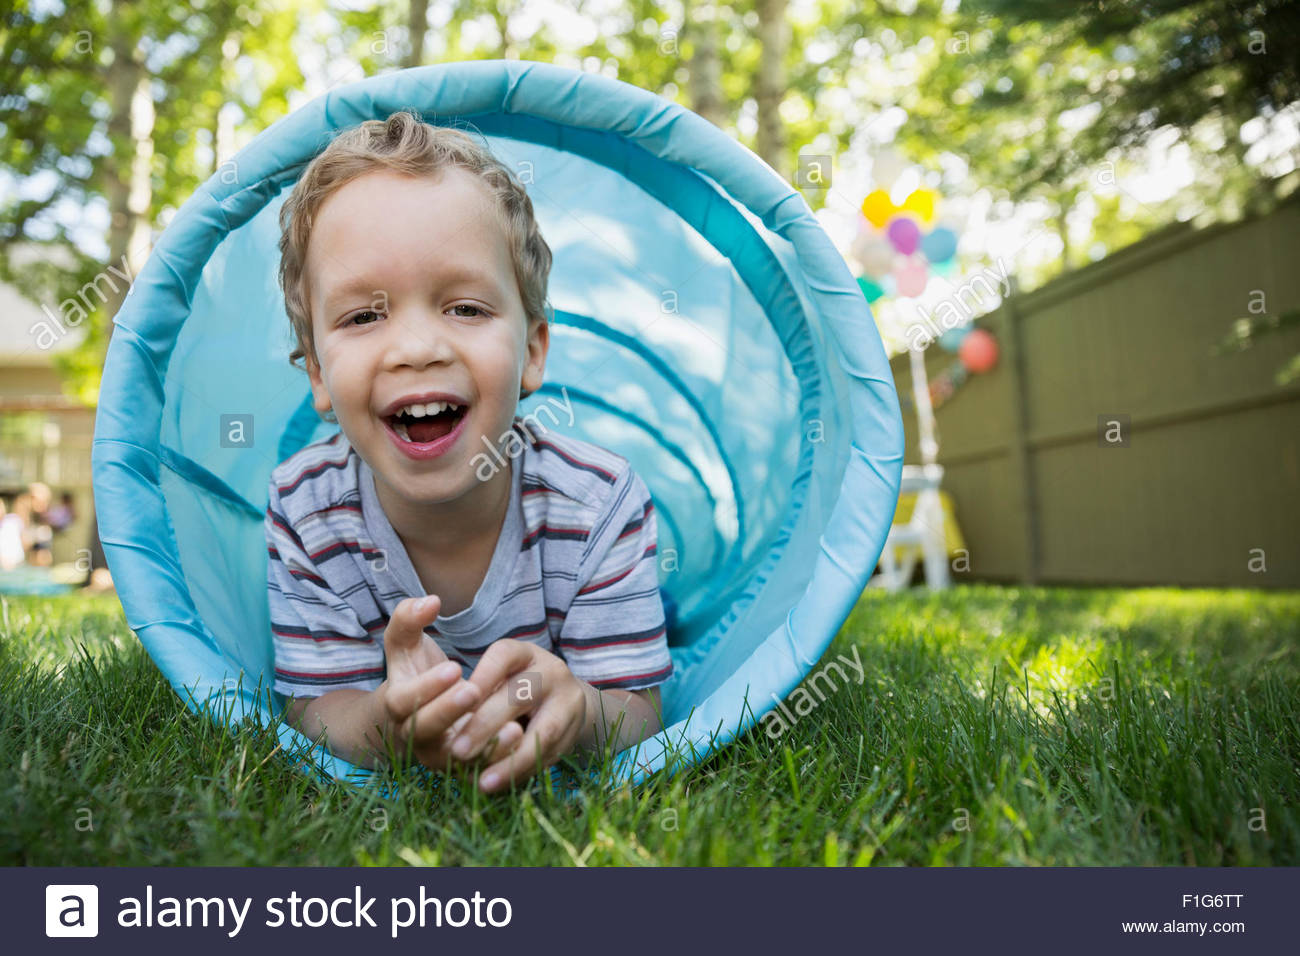 Portrait smiling boy à l'intérieur de tunnel jouet in backyard Photo Stock